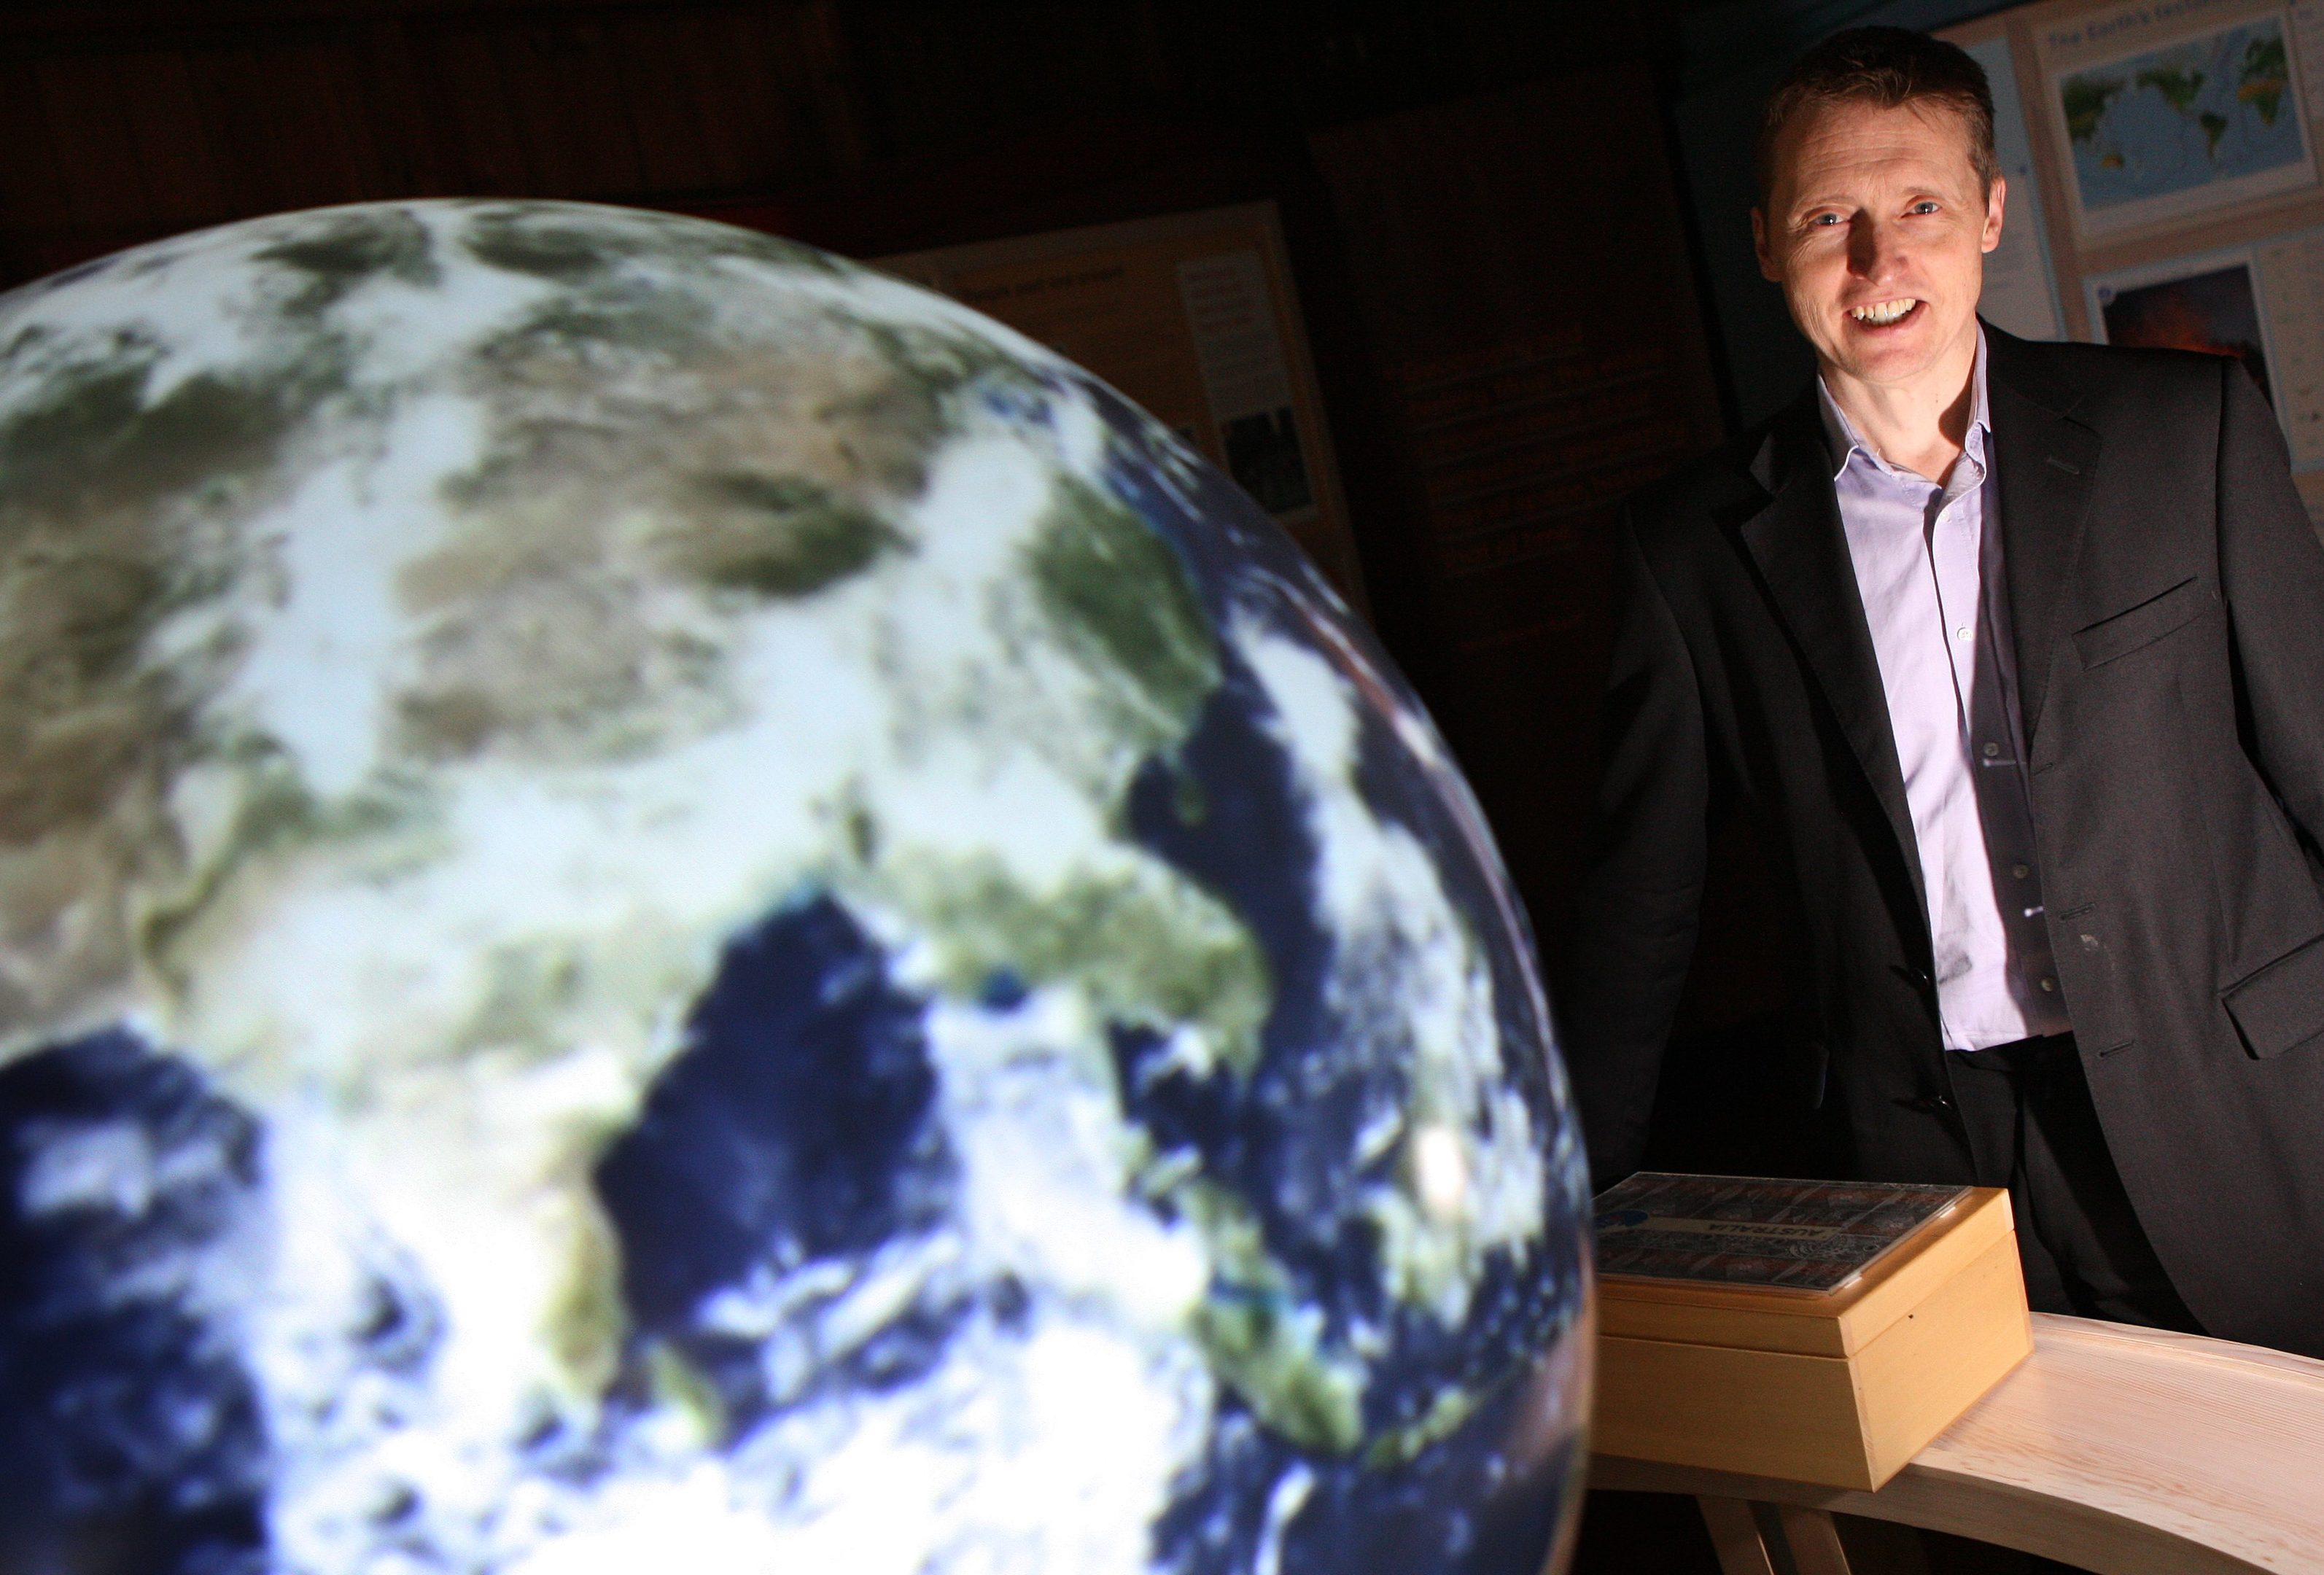 Royal Scottish Geographical Society chief executive Mike Robinson